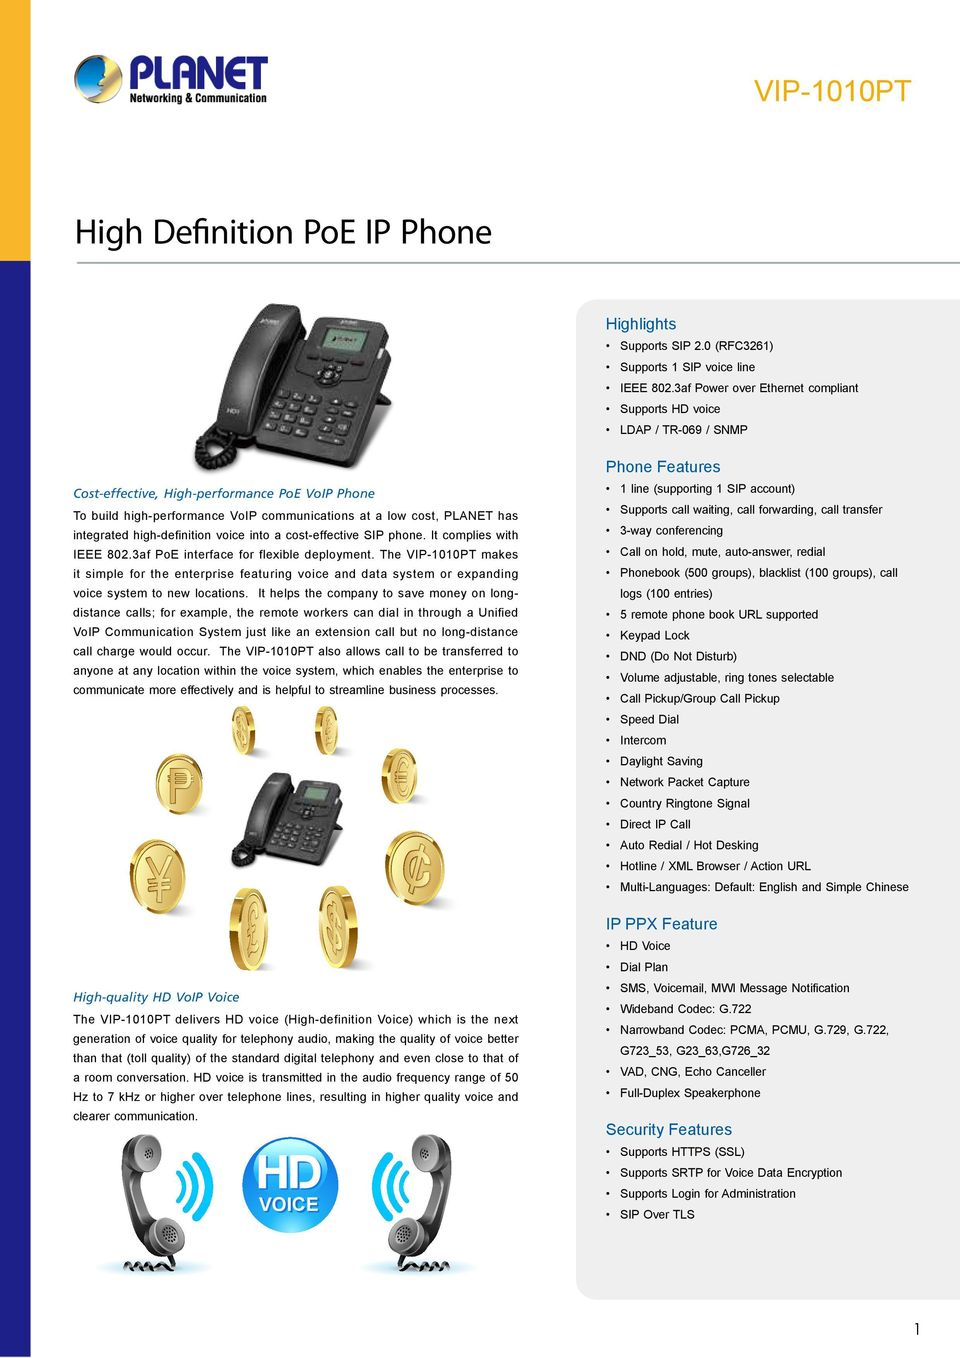 high-definition voice into a cost-effective SIP phone. It complies with IEEE 802.3af interface for flexible deployment.